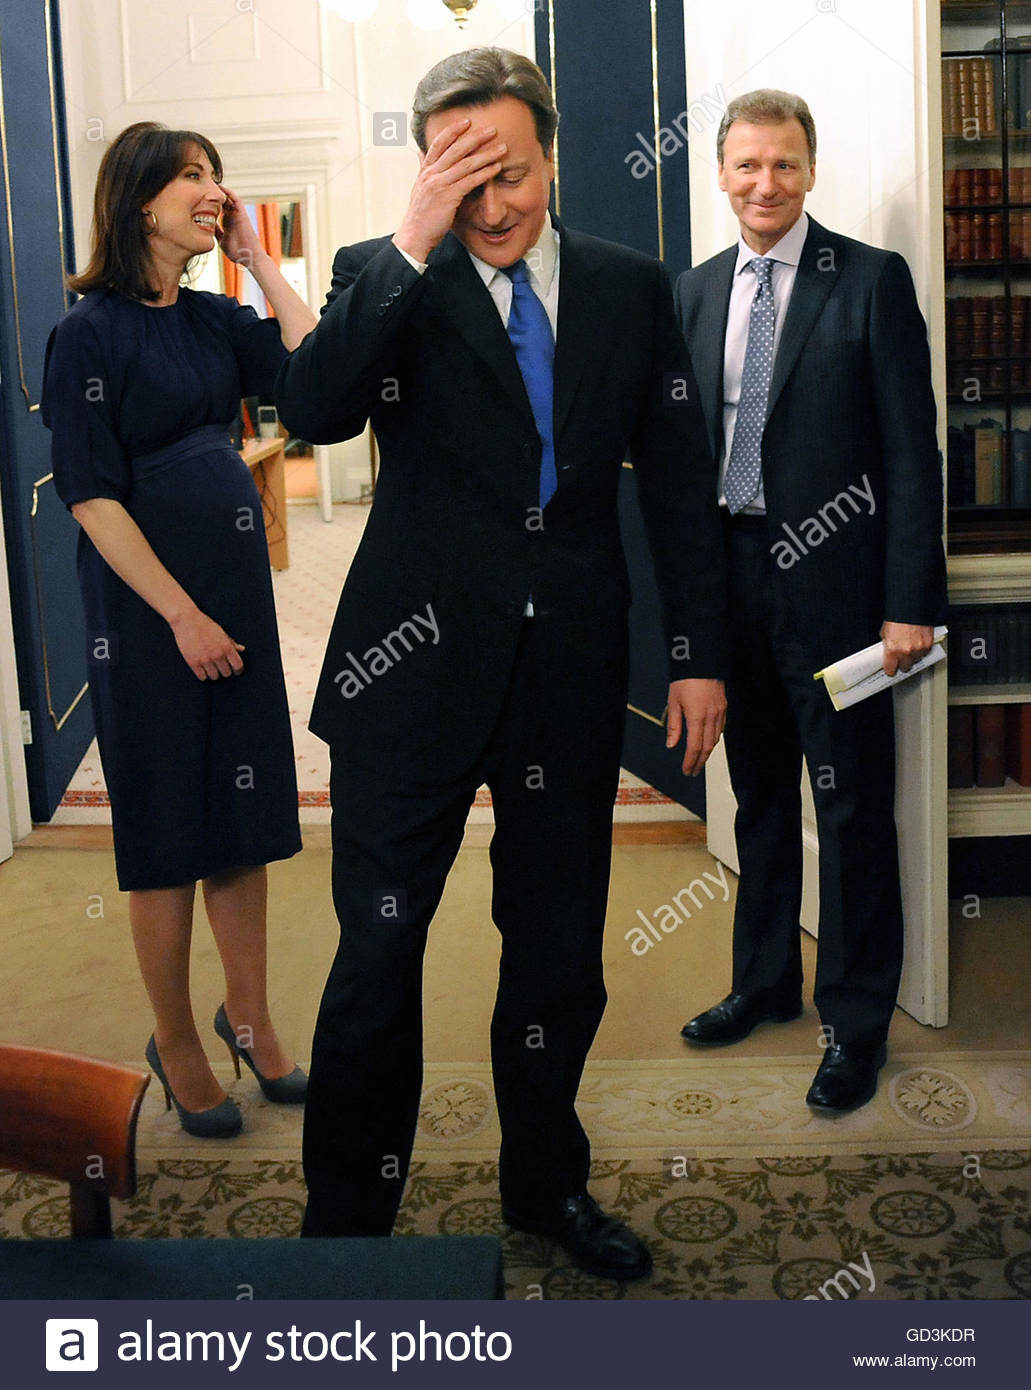 File photo dated 11/05/10 of Minister David Cameron and his wife Samantha meet Cabinet Secretary Gus O'Donnell in Stock Photo